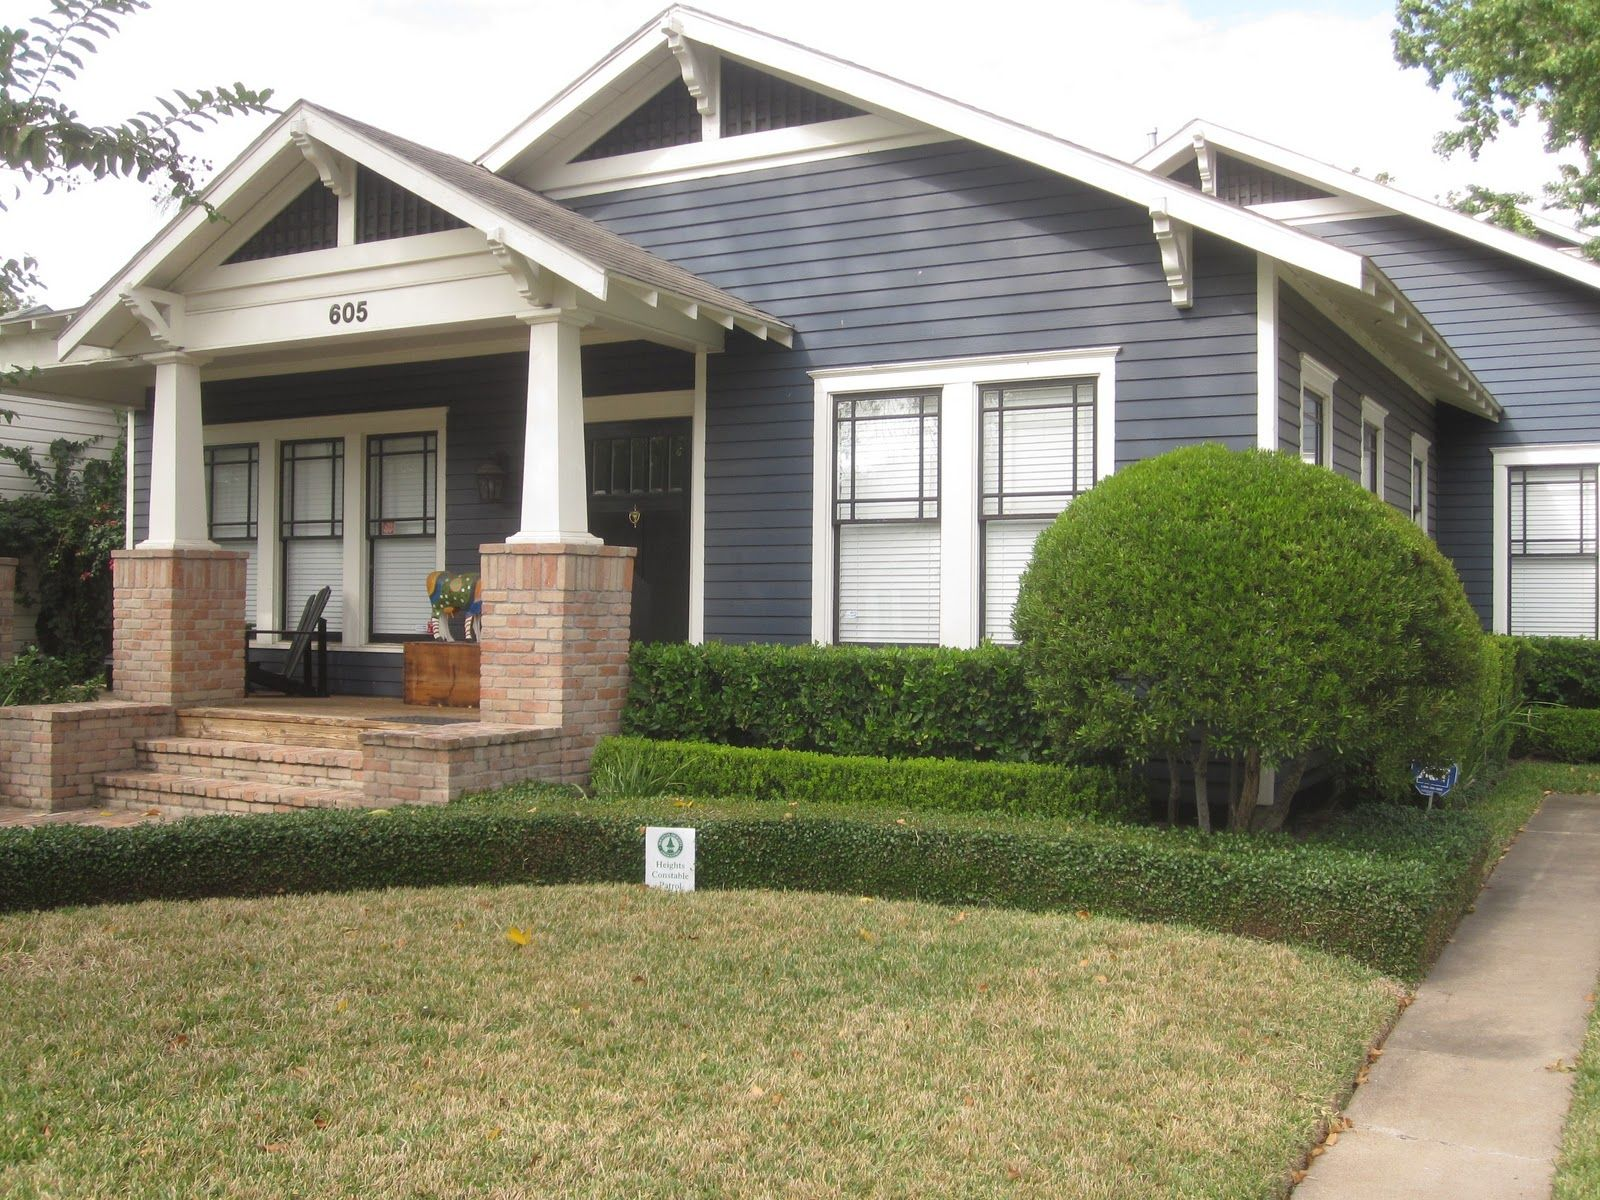 Bungalow exterior paint color schemes immaculately kept - White exterior paint color schemes ...